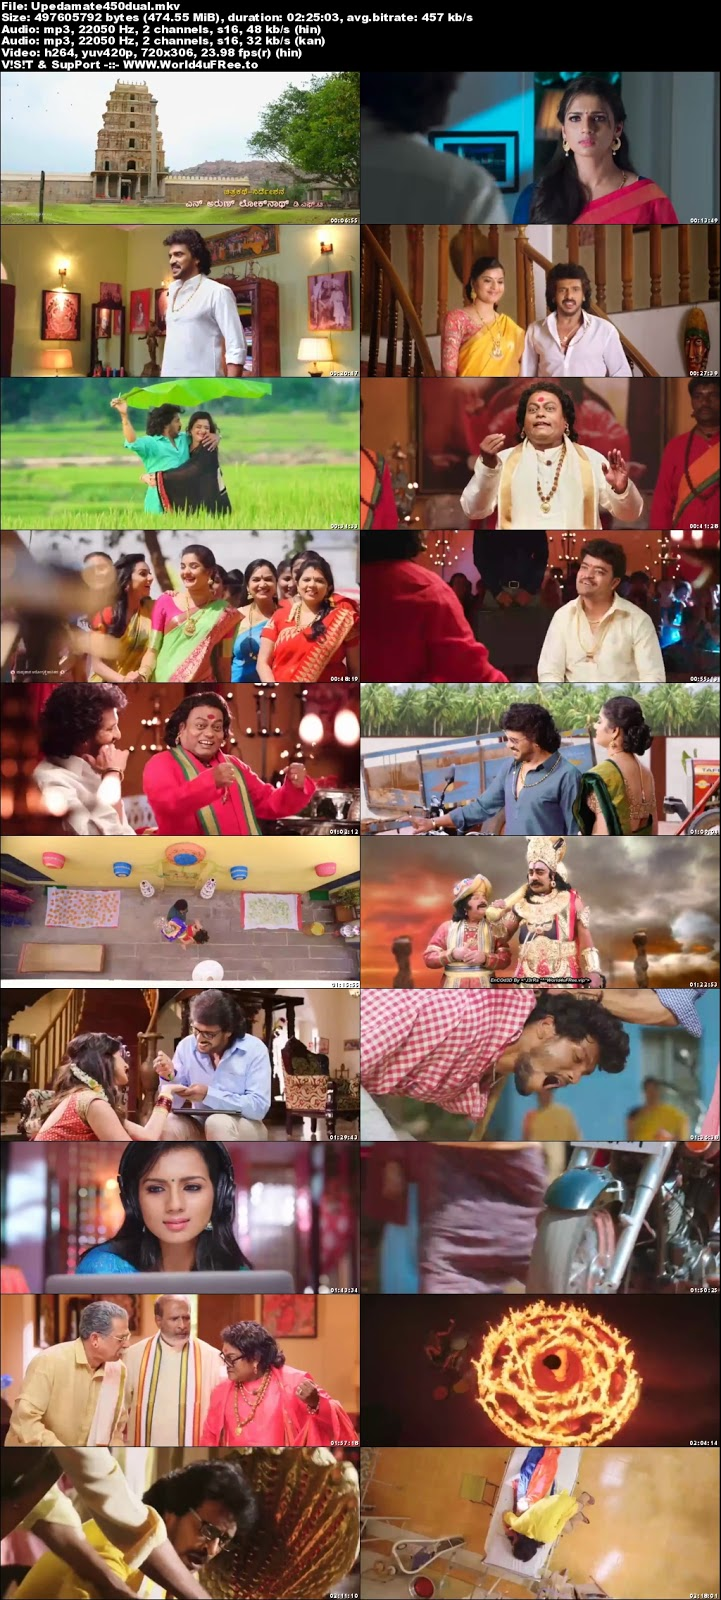 Upendra Matte Baa 2017 Dual Audio UNCUT HDRip 480p 450Mb x264 world4ufree.vip , South indian movie Baloon 2018 hindi dubbed world4ufree.vip 480p hdrip webrip dvdrip 400mb brrip bluray small size compressed free download or watch online at world4ufree.vip